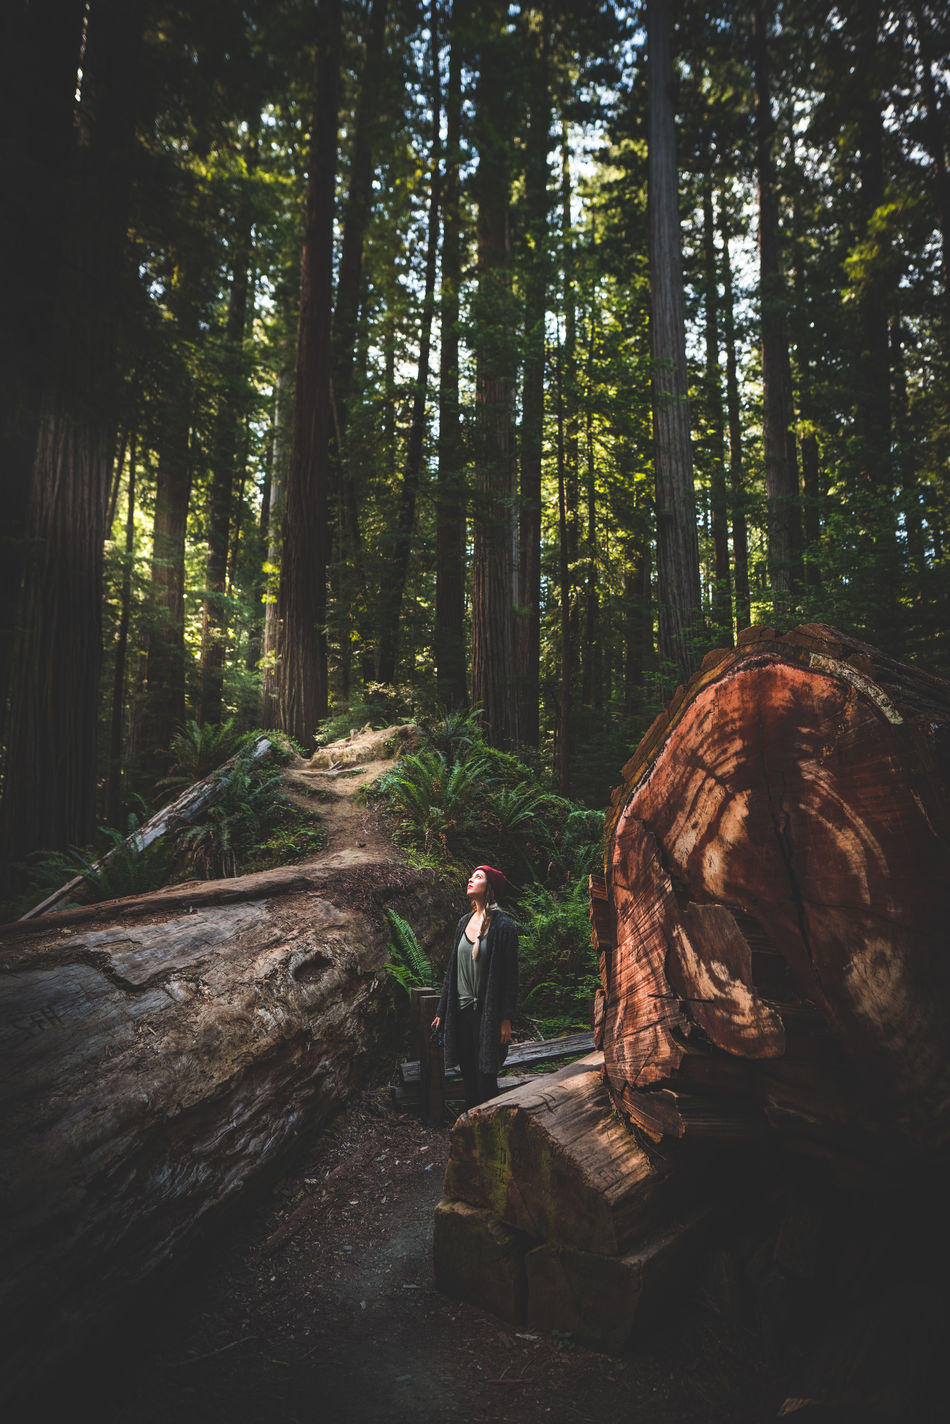 Lost & Found One Person Real People Forest Lifestyles Tree People Nature Outdoors Young Adult Day California Pacific Northwest  Nature Travel Photography Full Frame Travel Green Color Showcase: April Redwoods Environment Idyllic Dreamy The Secret Spaces